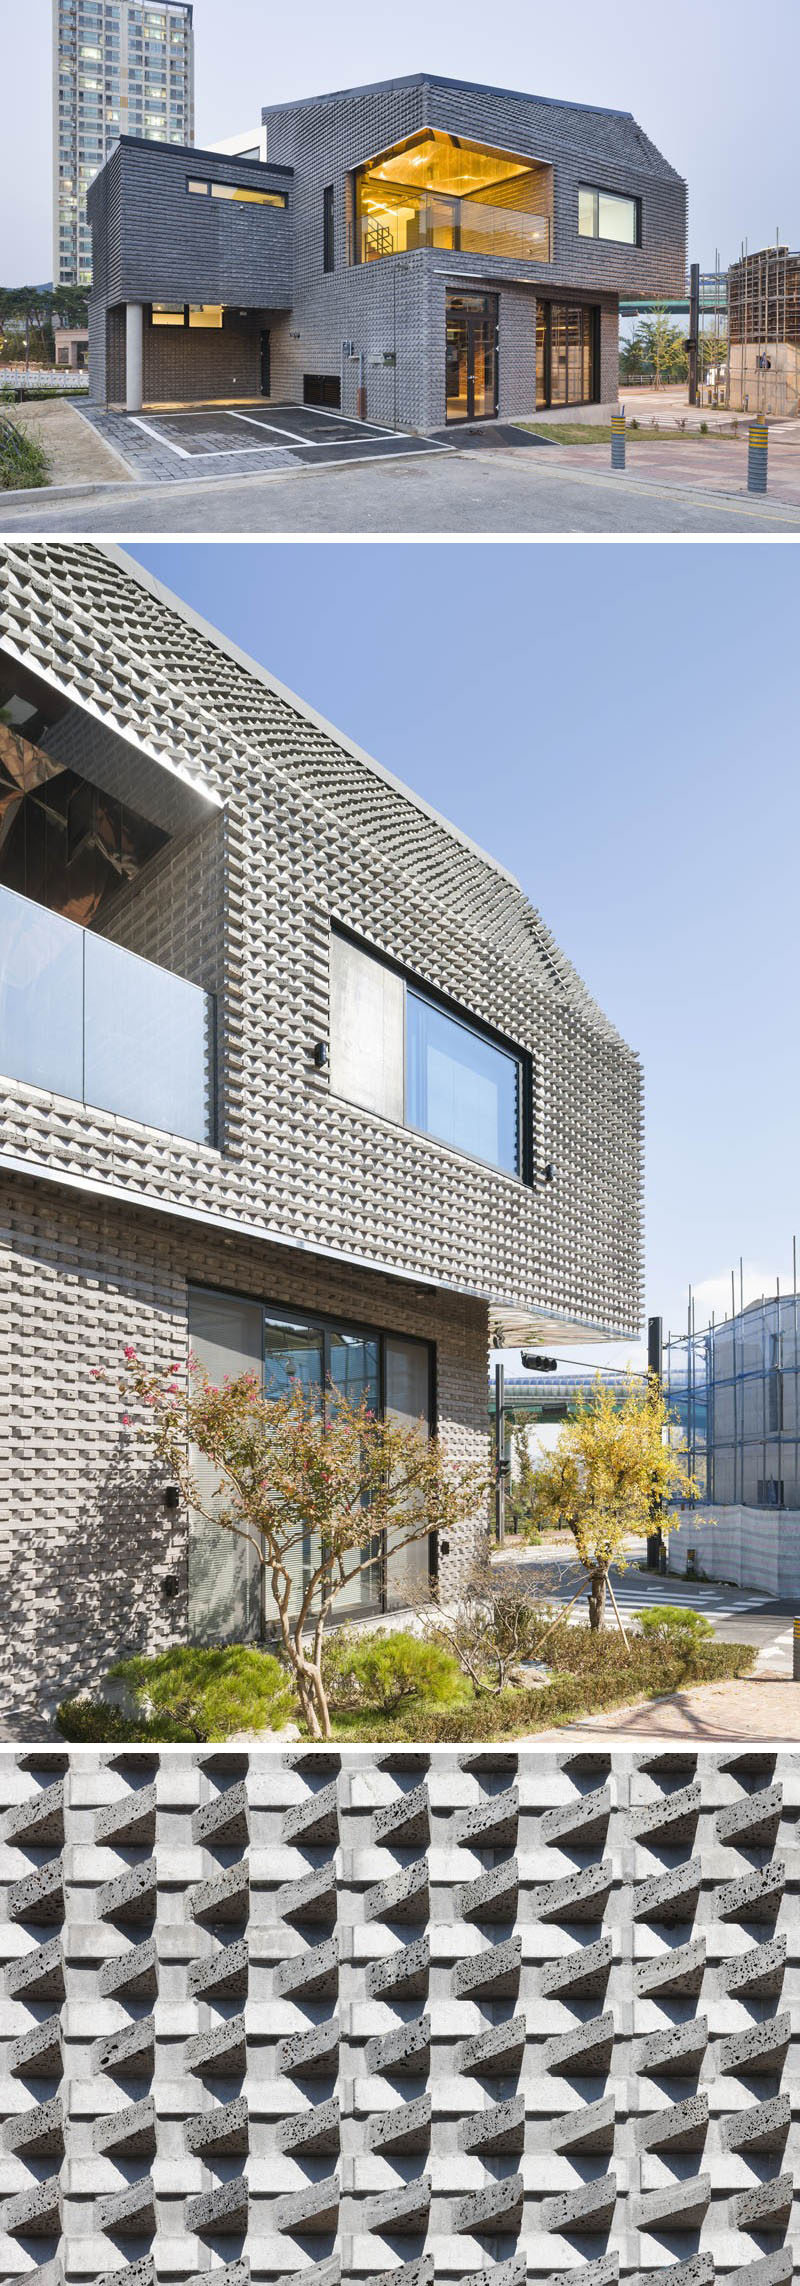 14 Modern Houses Made Of Brick // The bricks on the exterior of this house have been arranged on angles to create a textured look and a unique finish on the home.